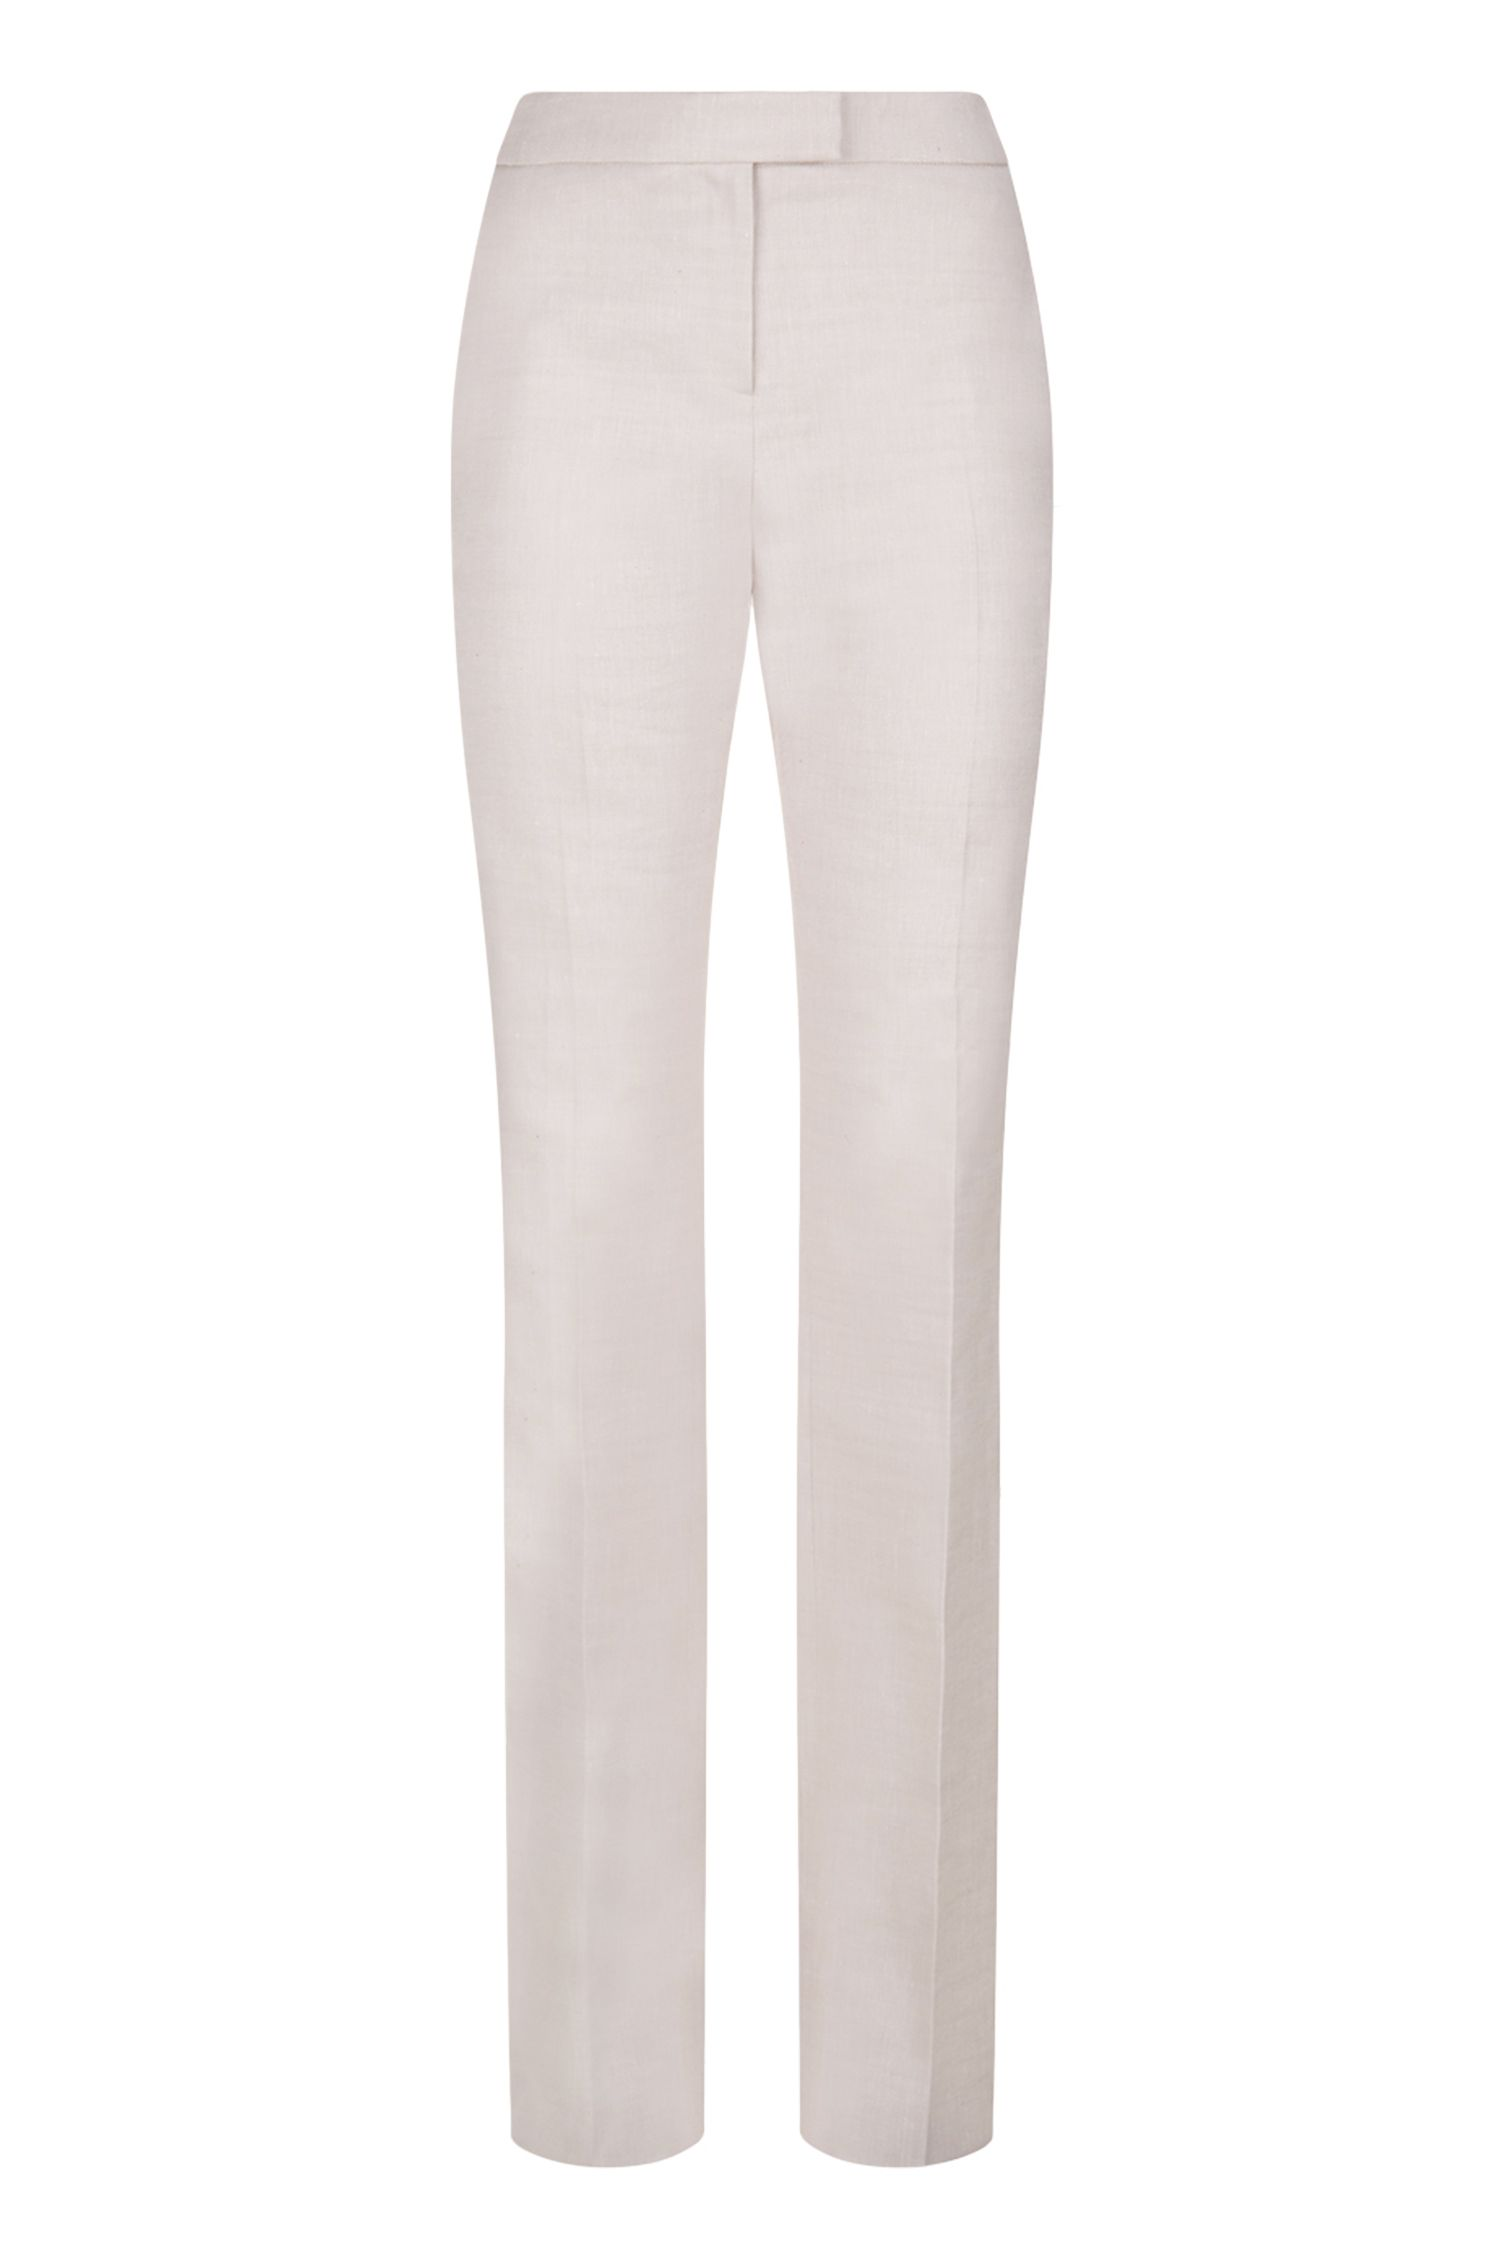 Fenn Wright Manson Allium Trouser